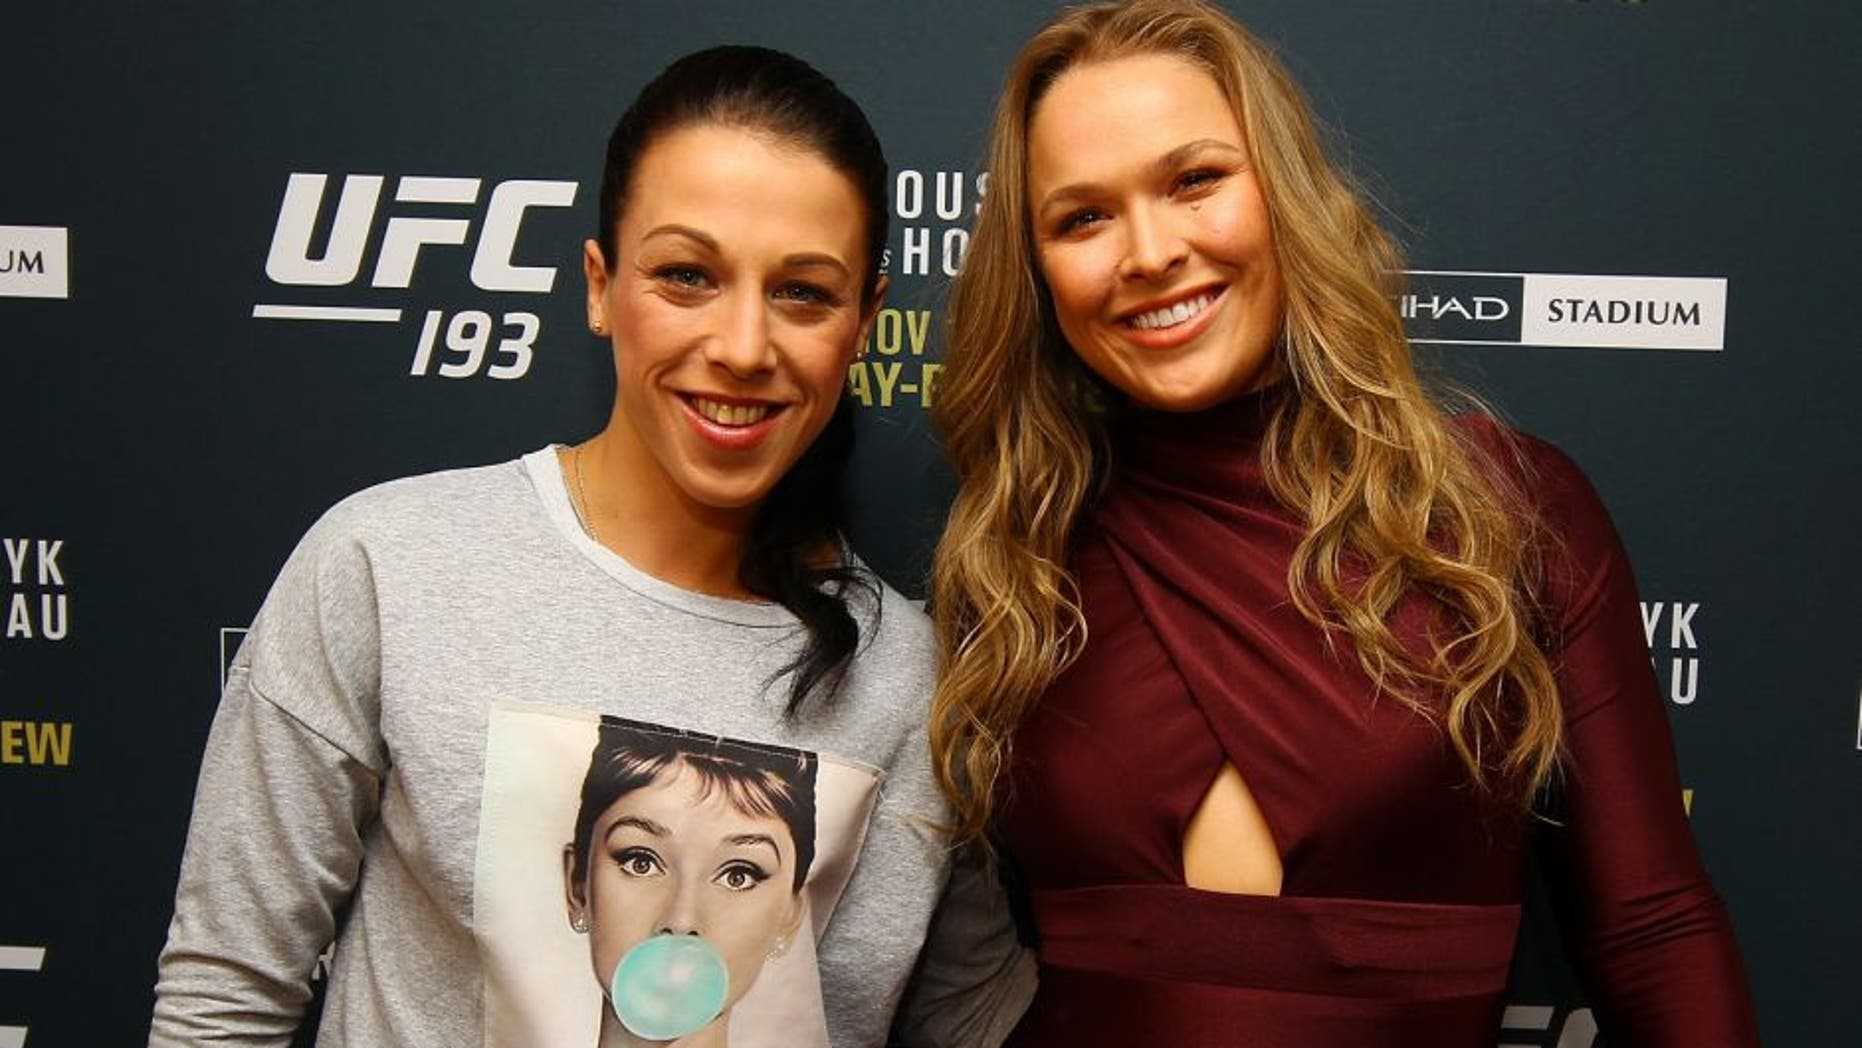 NEW YORK, NY - OCTOBER 06: (R-L) UFC women's bantamweight champion Ronda Rousey and UFC women's strawweight champion Joanna Jedrzejczyk pose for a photo at the London NYC hotel ahead of UFC 193 on October 6, 2015 in New York, United States. (Photo by Mike Stobe/Zuffa LLC/Zuffa LLC via Getty Images)